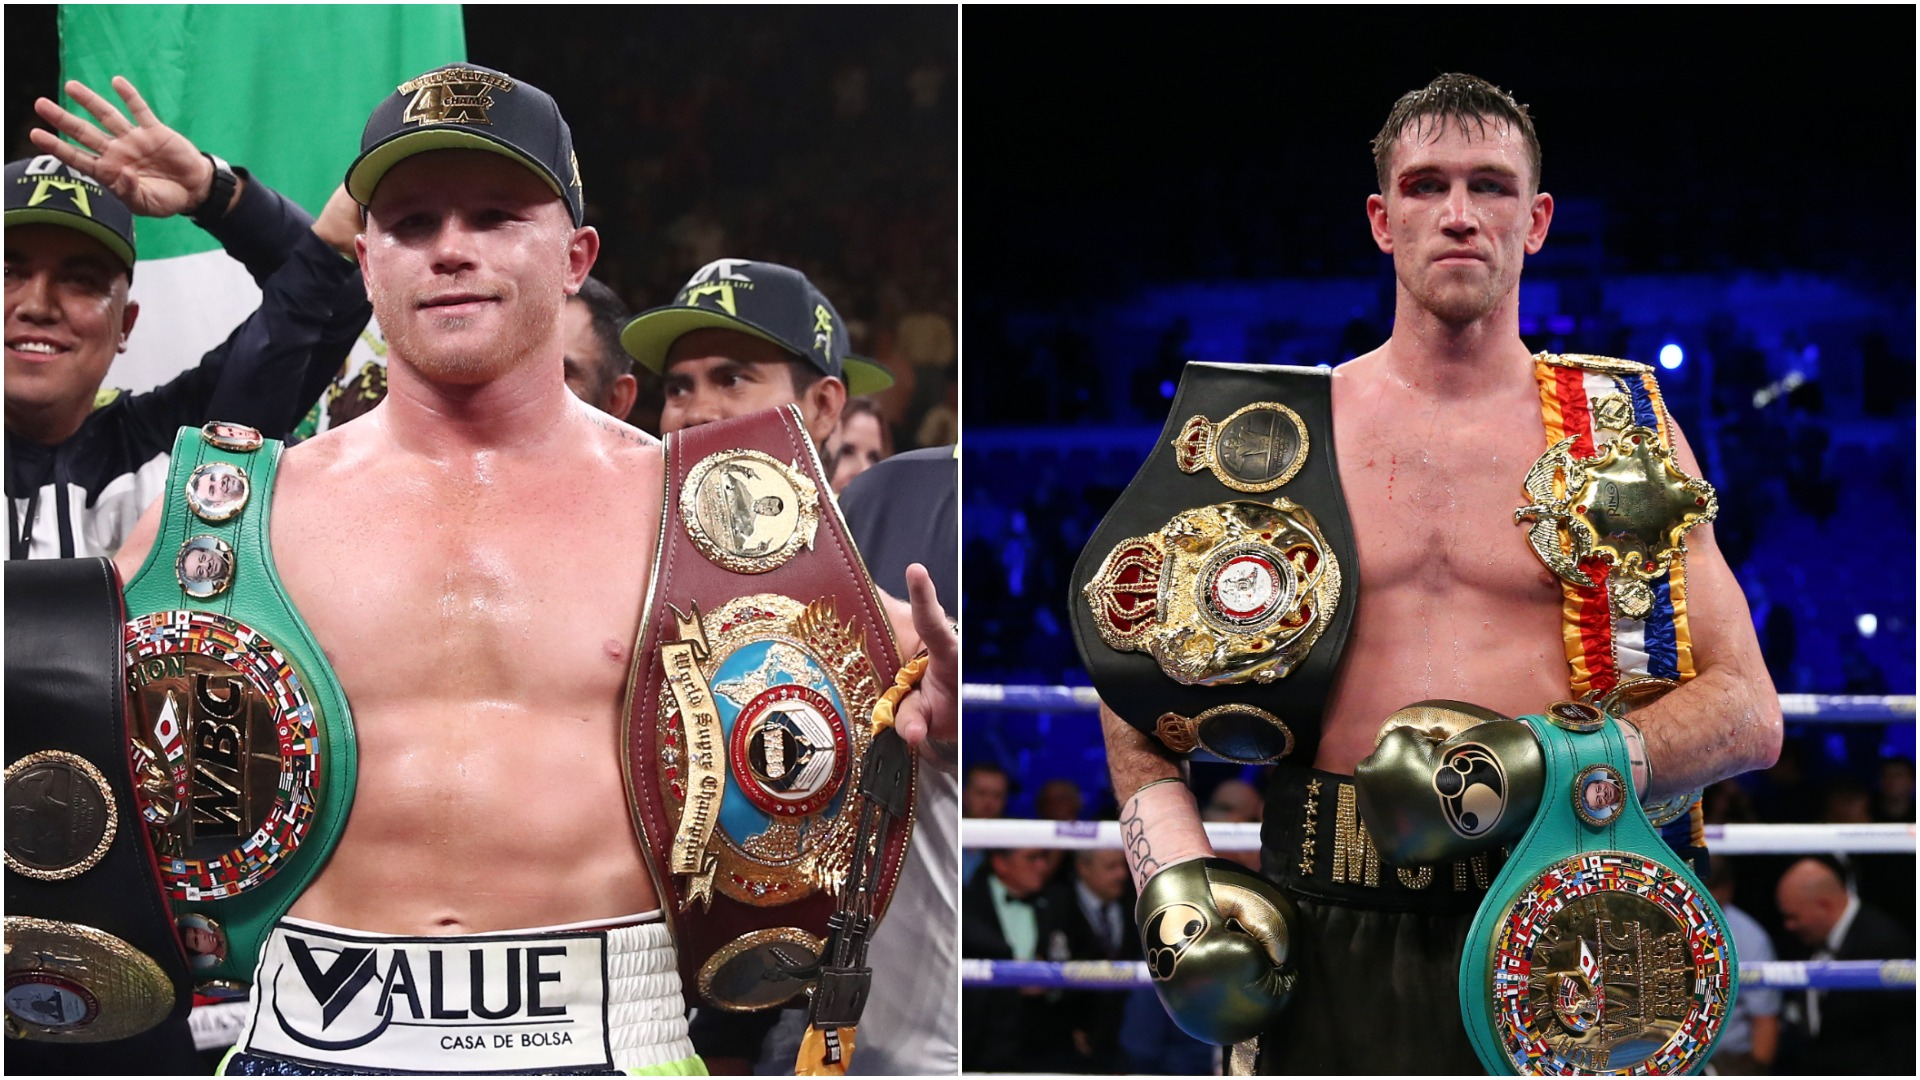 Saul Alvarez v Callum Smith: Canelo shows lofty ambitions in super-middleweight fight